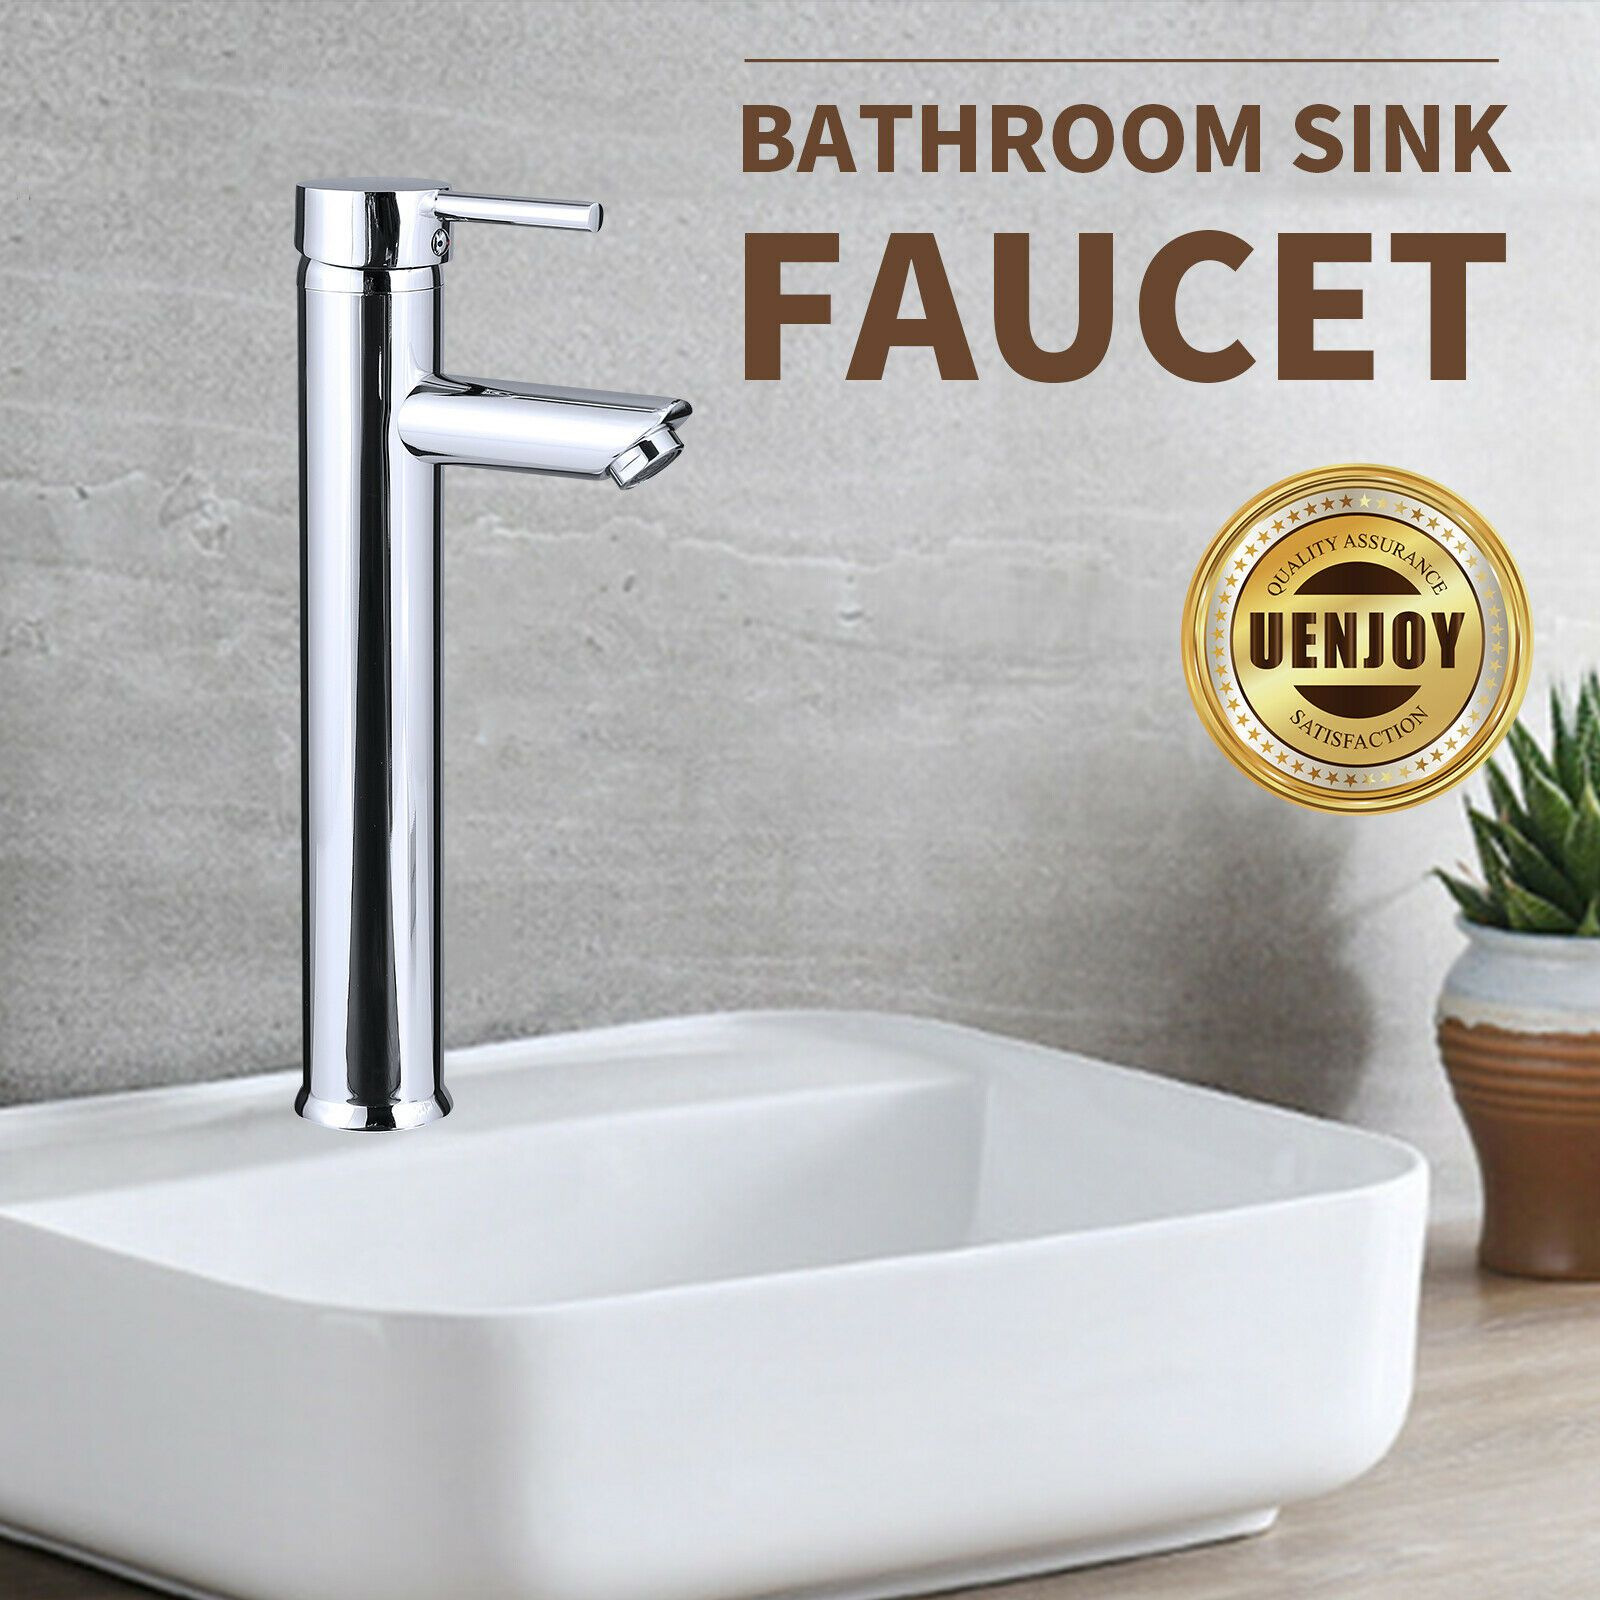 Modern Bathroom Basin Single Handle Faucet Waterfall Sink Mixer Tap Brass Home Kitchen Faucets Ideas Sink Mixer Taps Bathroom Basin Chrome Kitchen Faucet